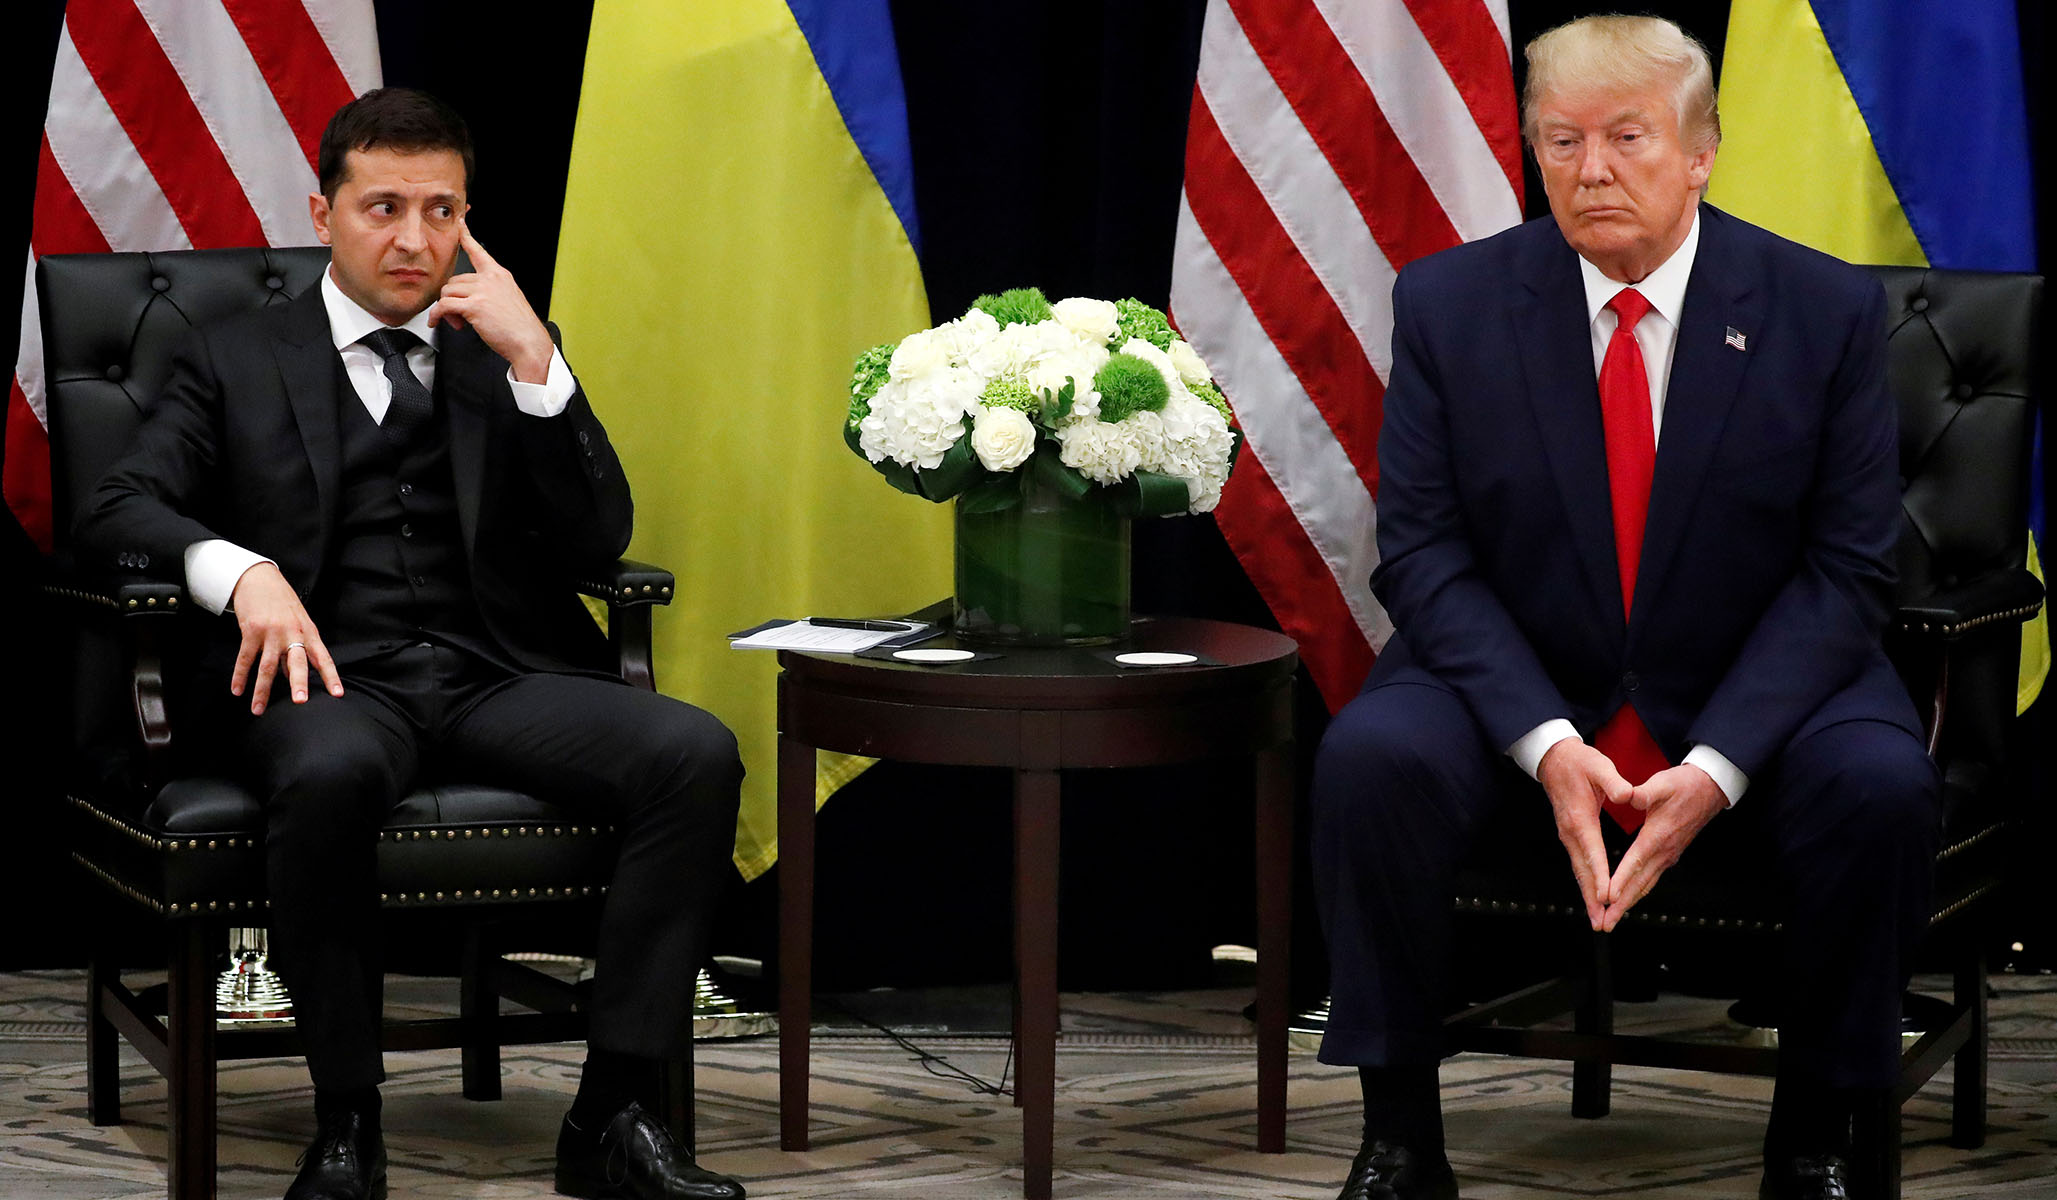 The Ukraine Scandal Shows That the Safeguards around Donald Trump Are Breaking Down